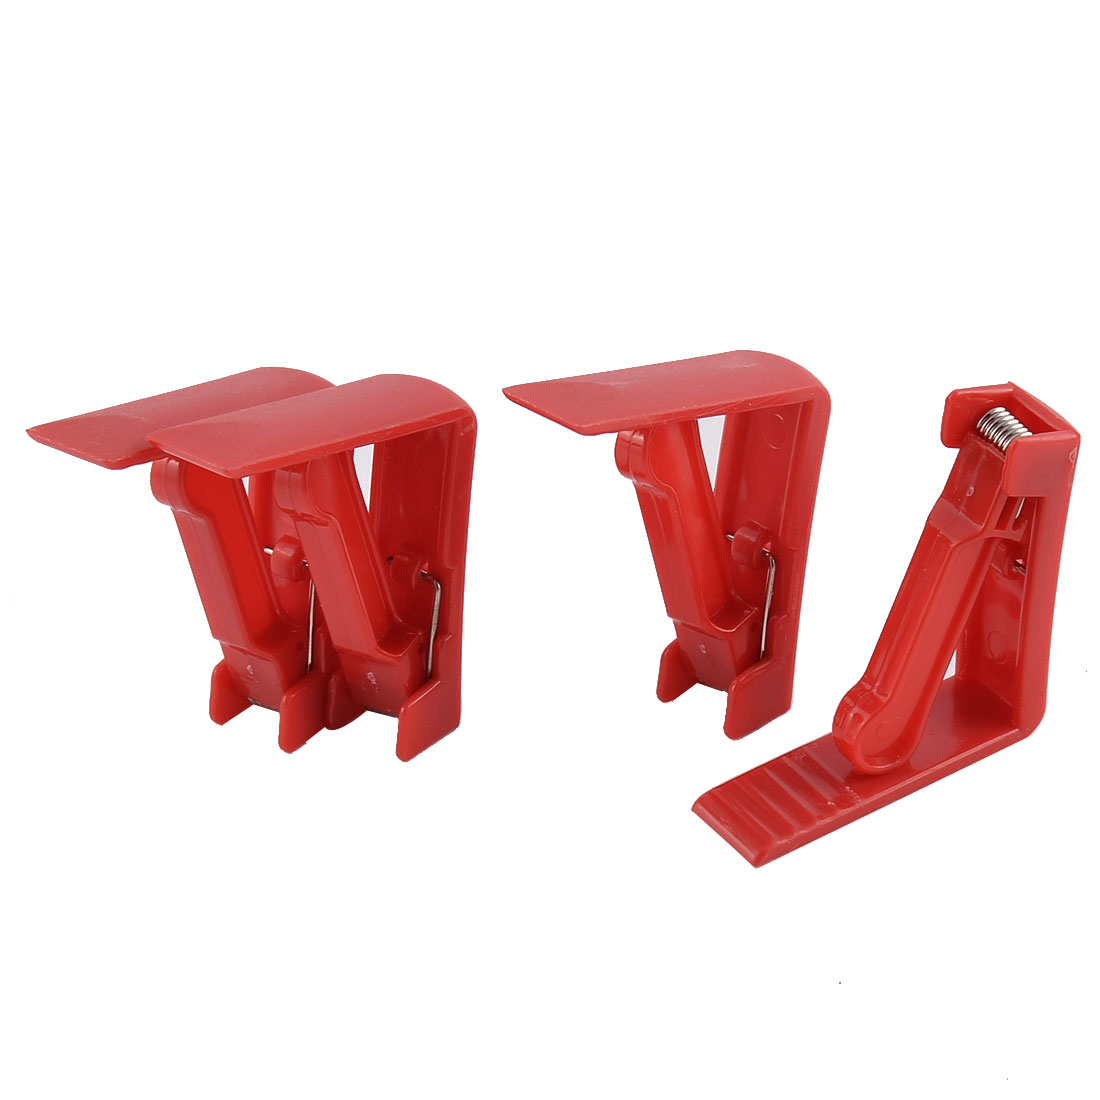 Home Party Wedding Banquet Plastic Table Cloth Holder Clip Clamp Red 4 Pcs